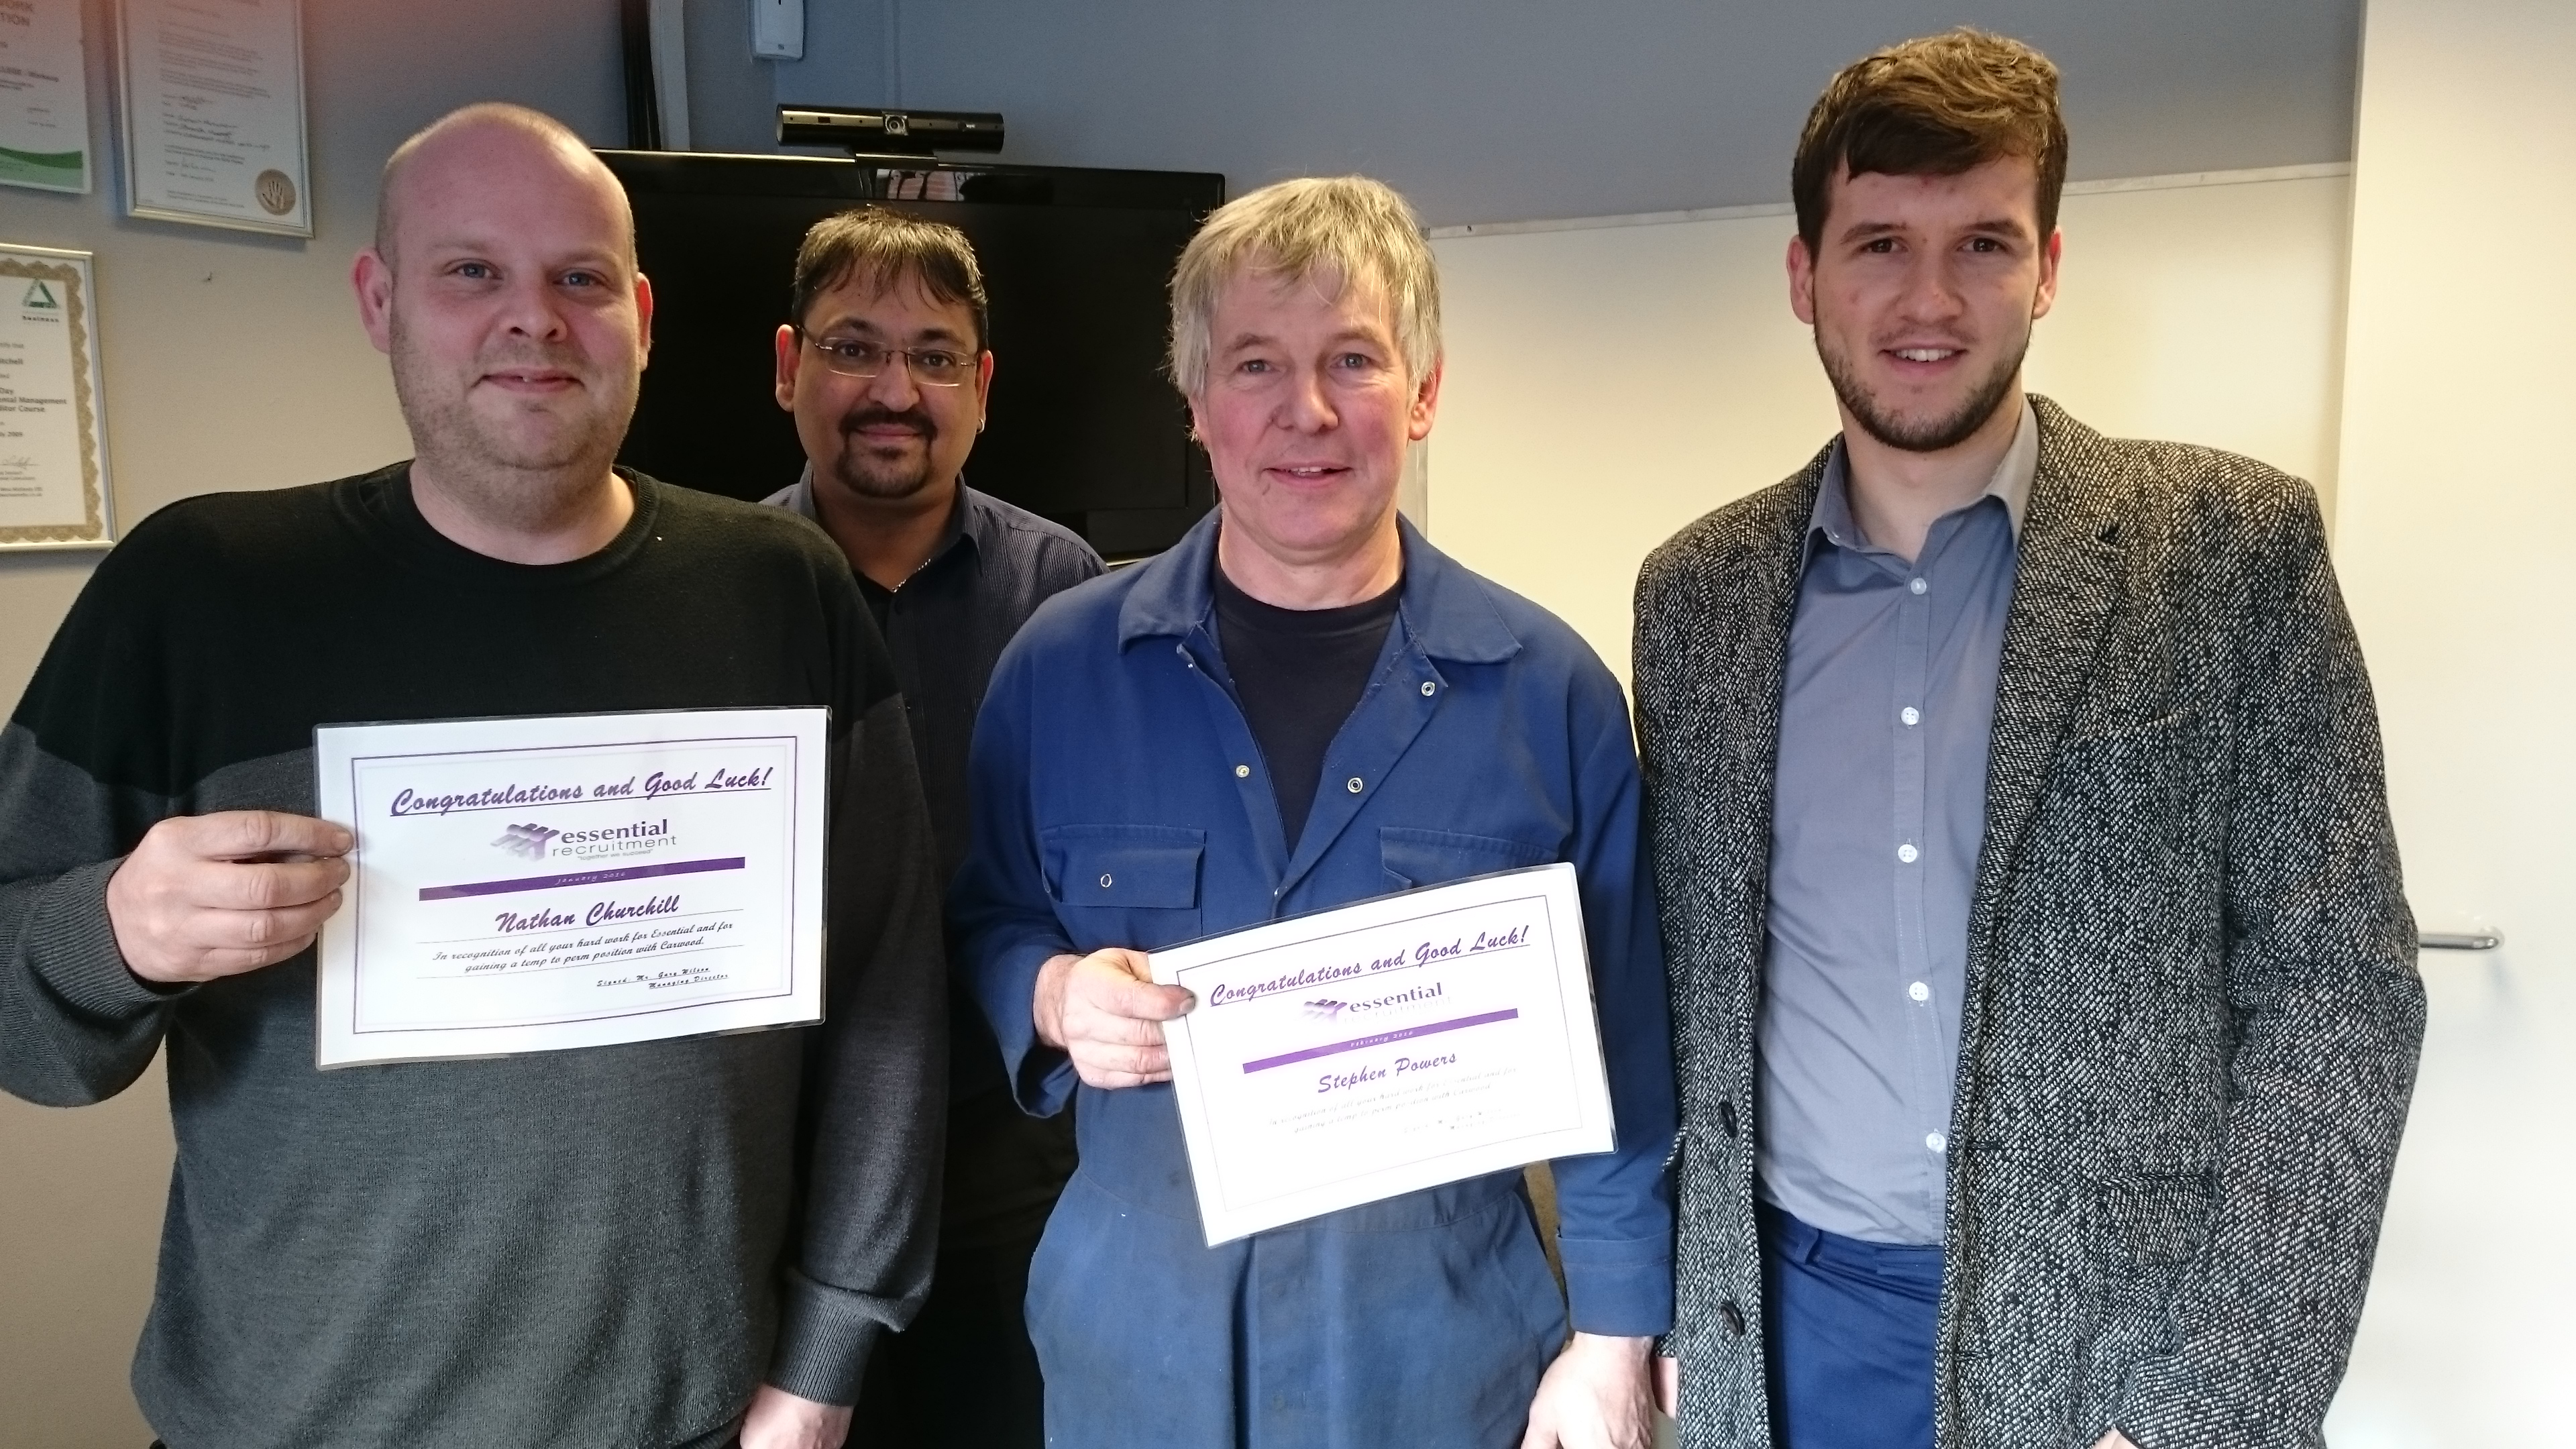 Stephen Powers and Nathan Churchill TTP Certificate Photo